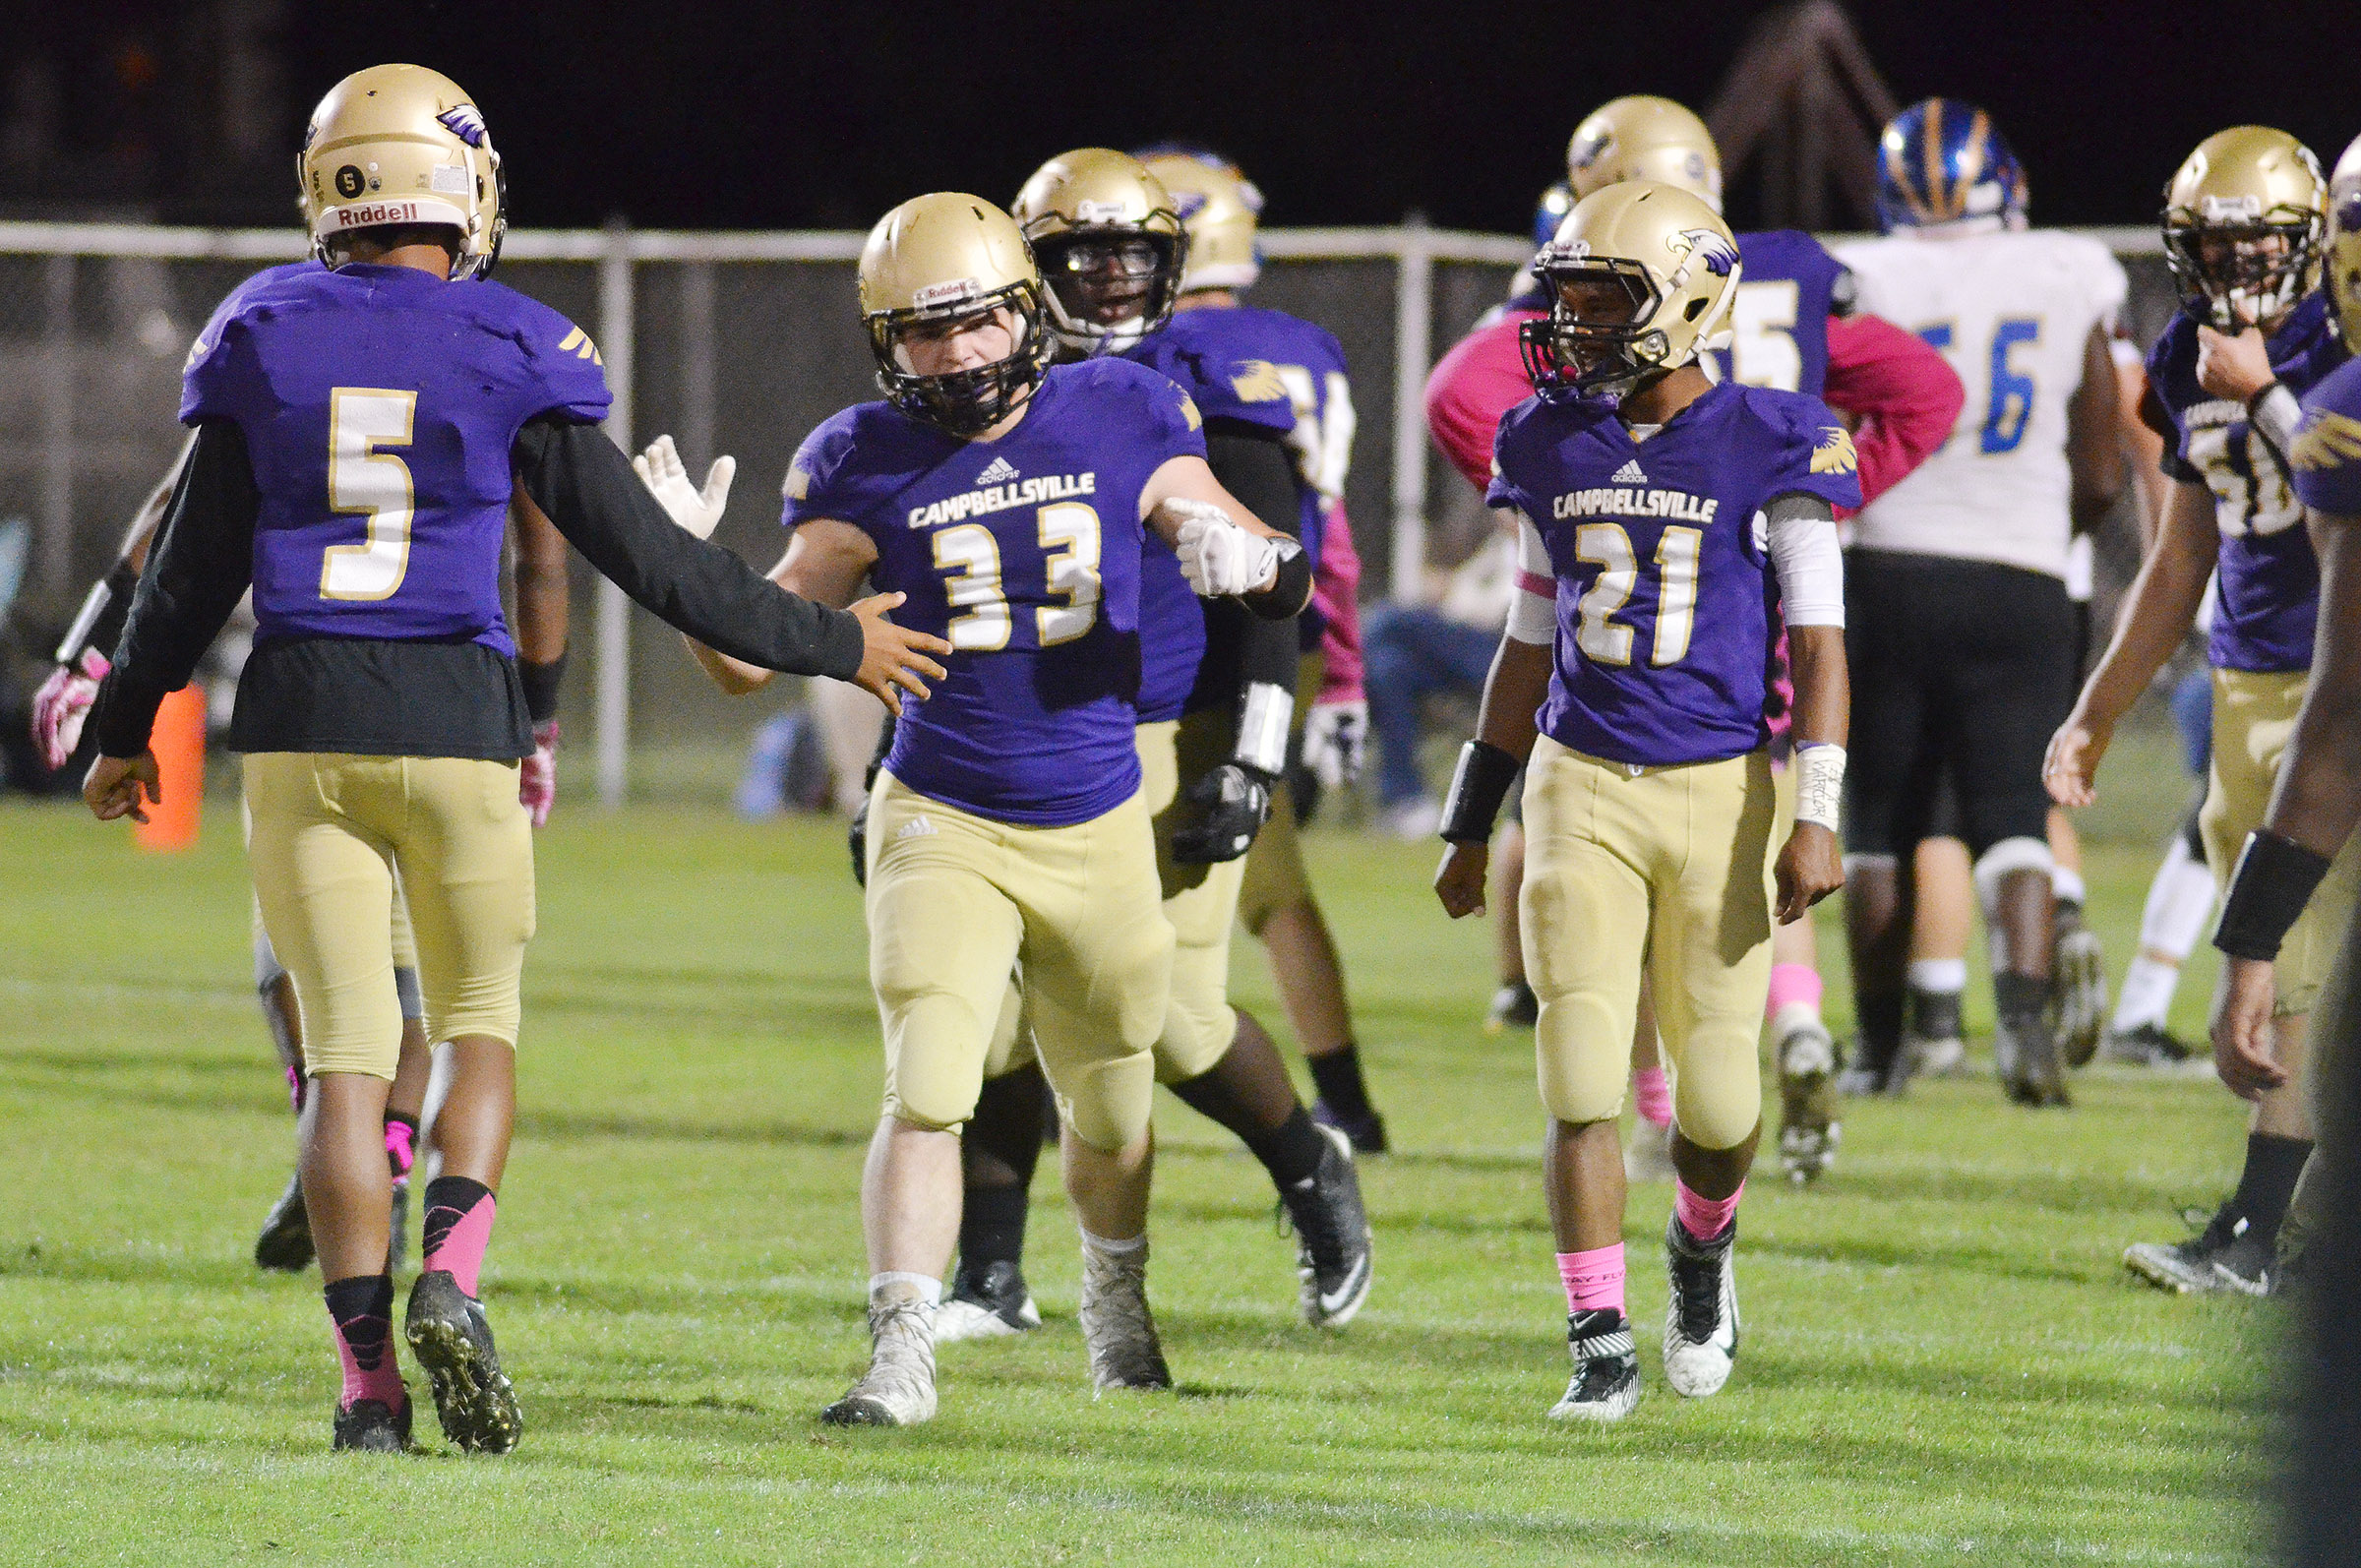 CHS football players celebrate a play.